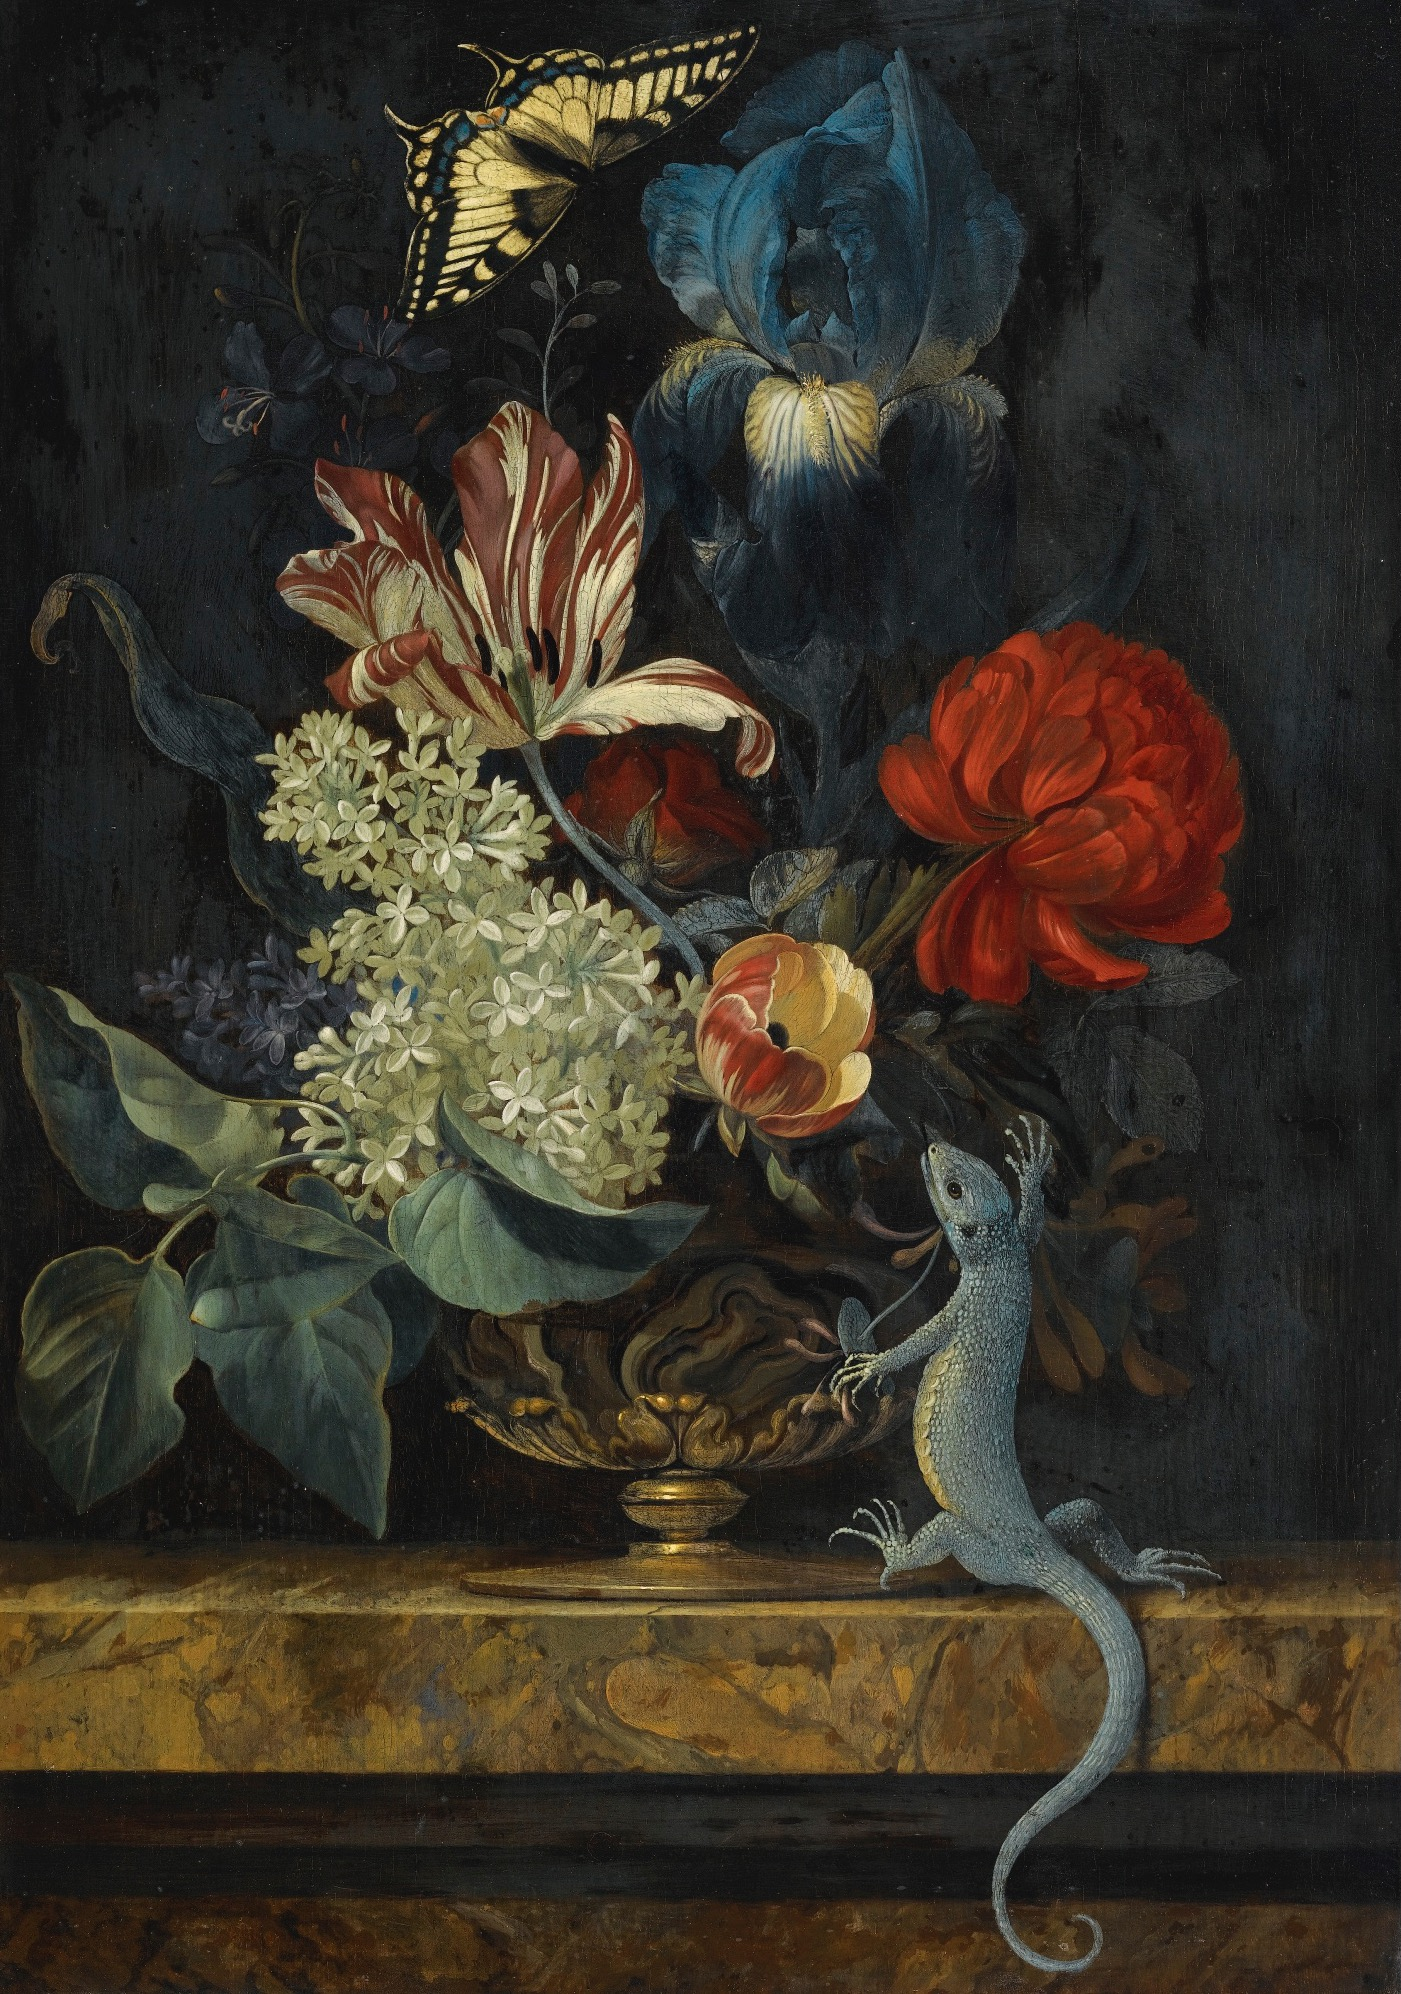 Still Life with Tulips and Other Flowers, a Lizard and a Butterfly, by Willemstad van Aelst